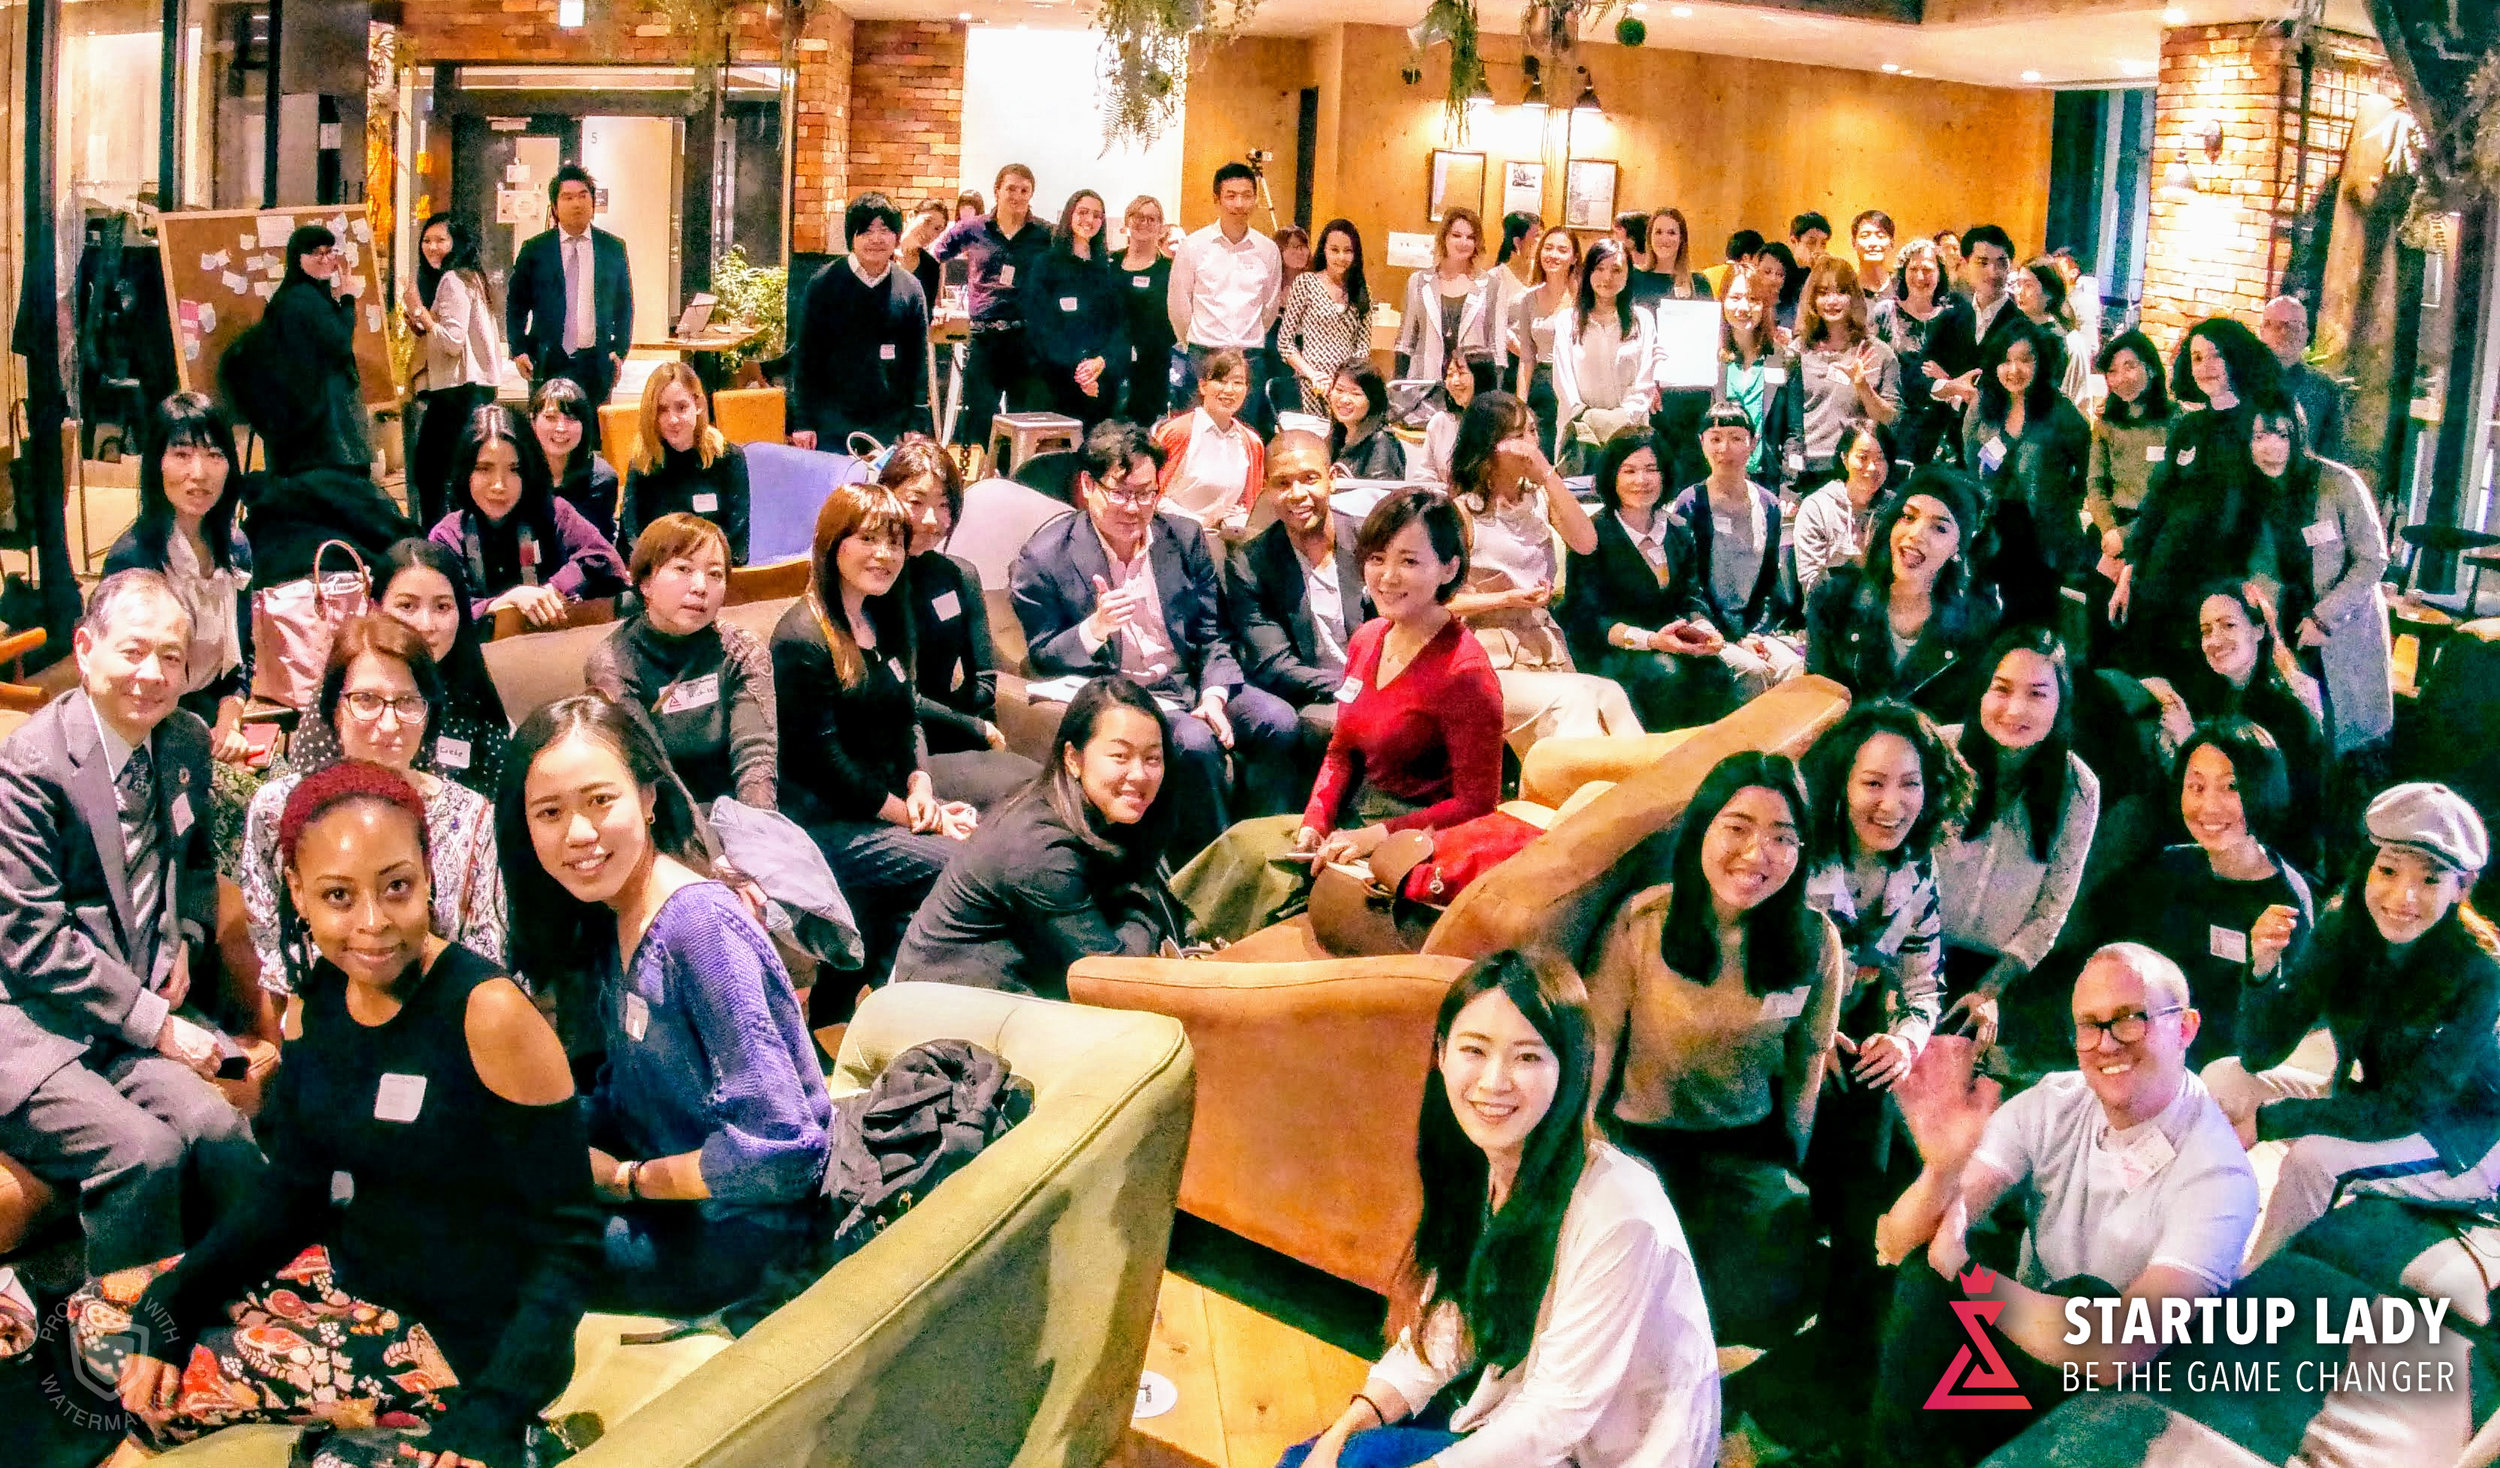 Starting a business in Japan? - Want to join a like-minded, English speaking community and get advice from successful Co-Founders and CEO mentors? Get on our limited time free trial of Startup Lady Beta membership!